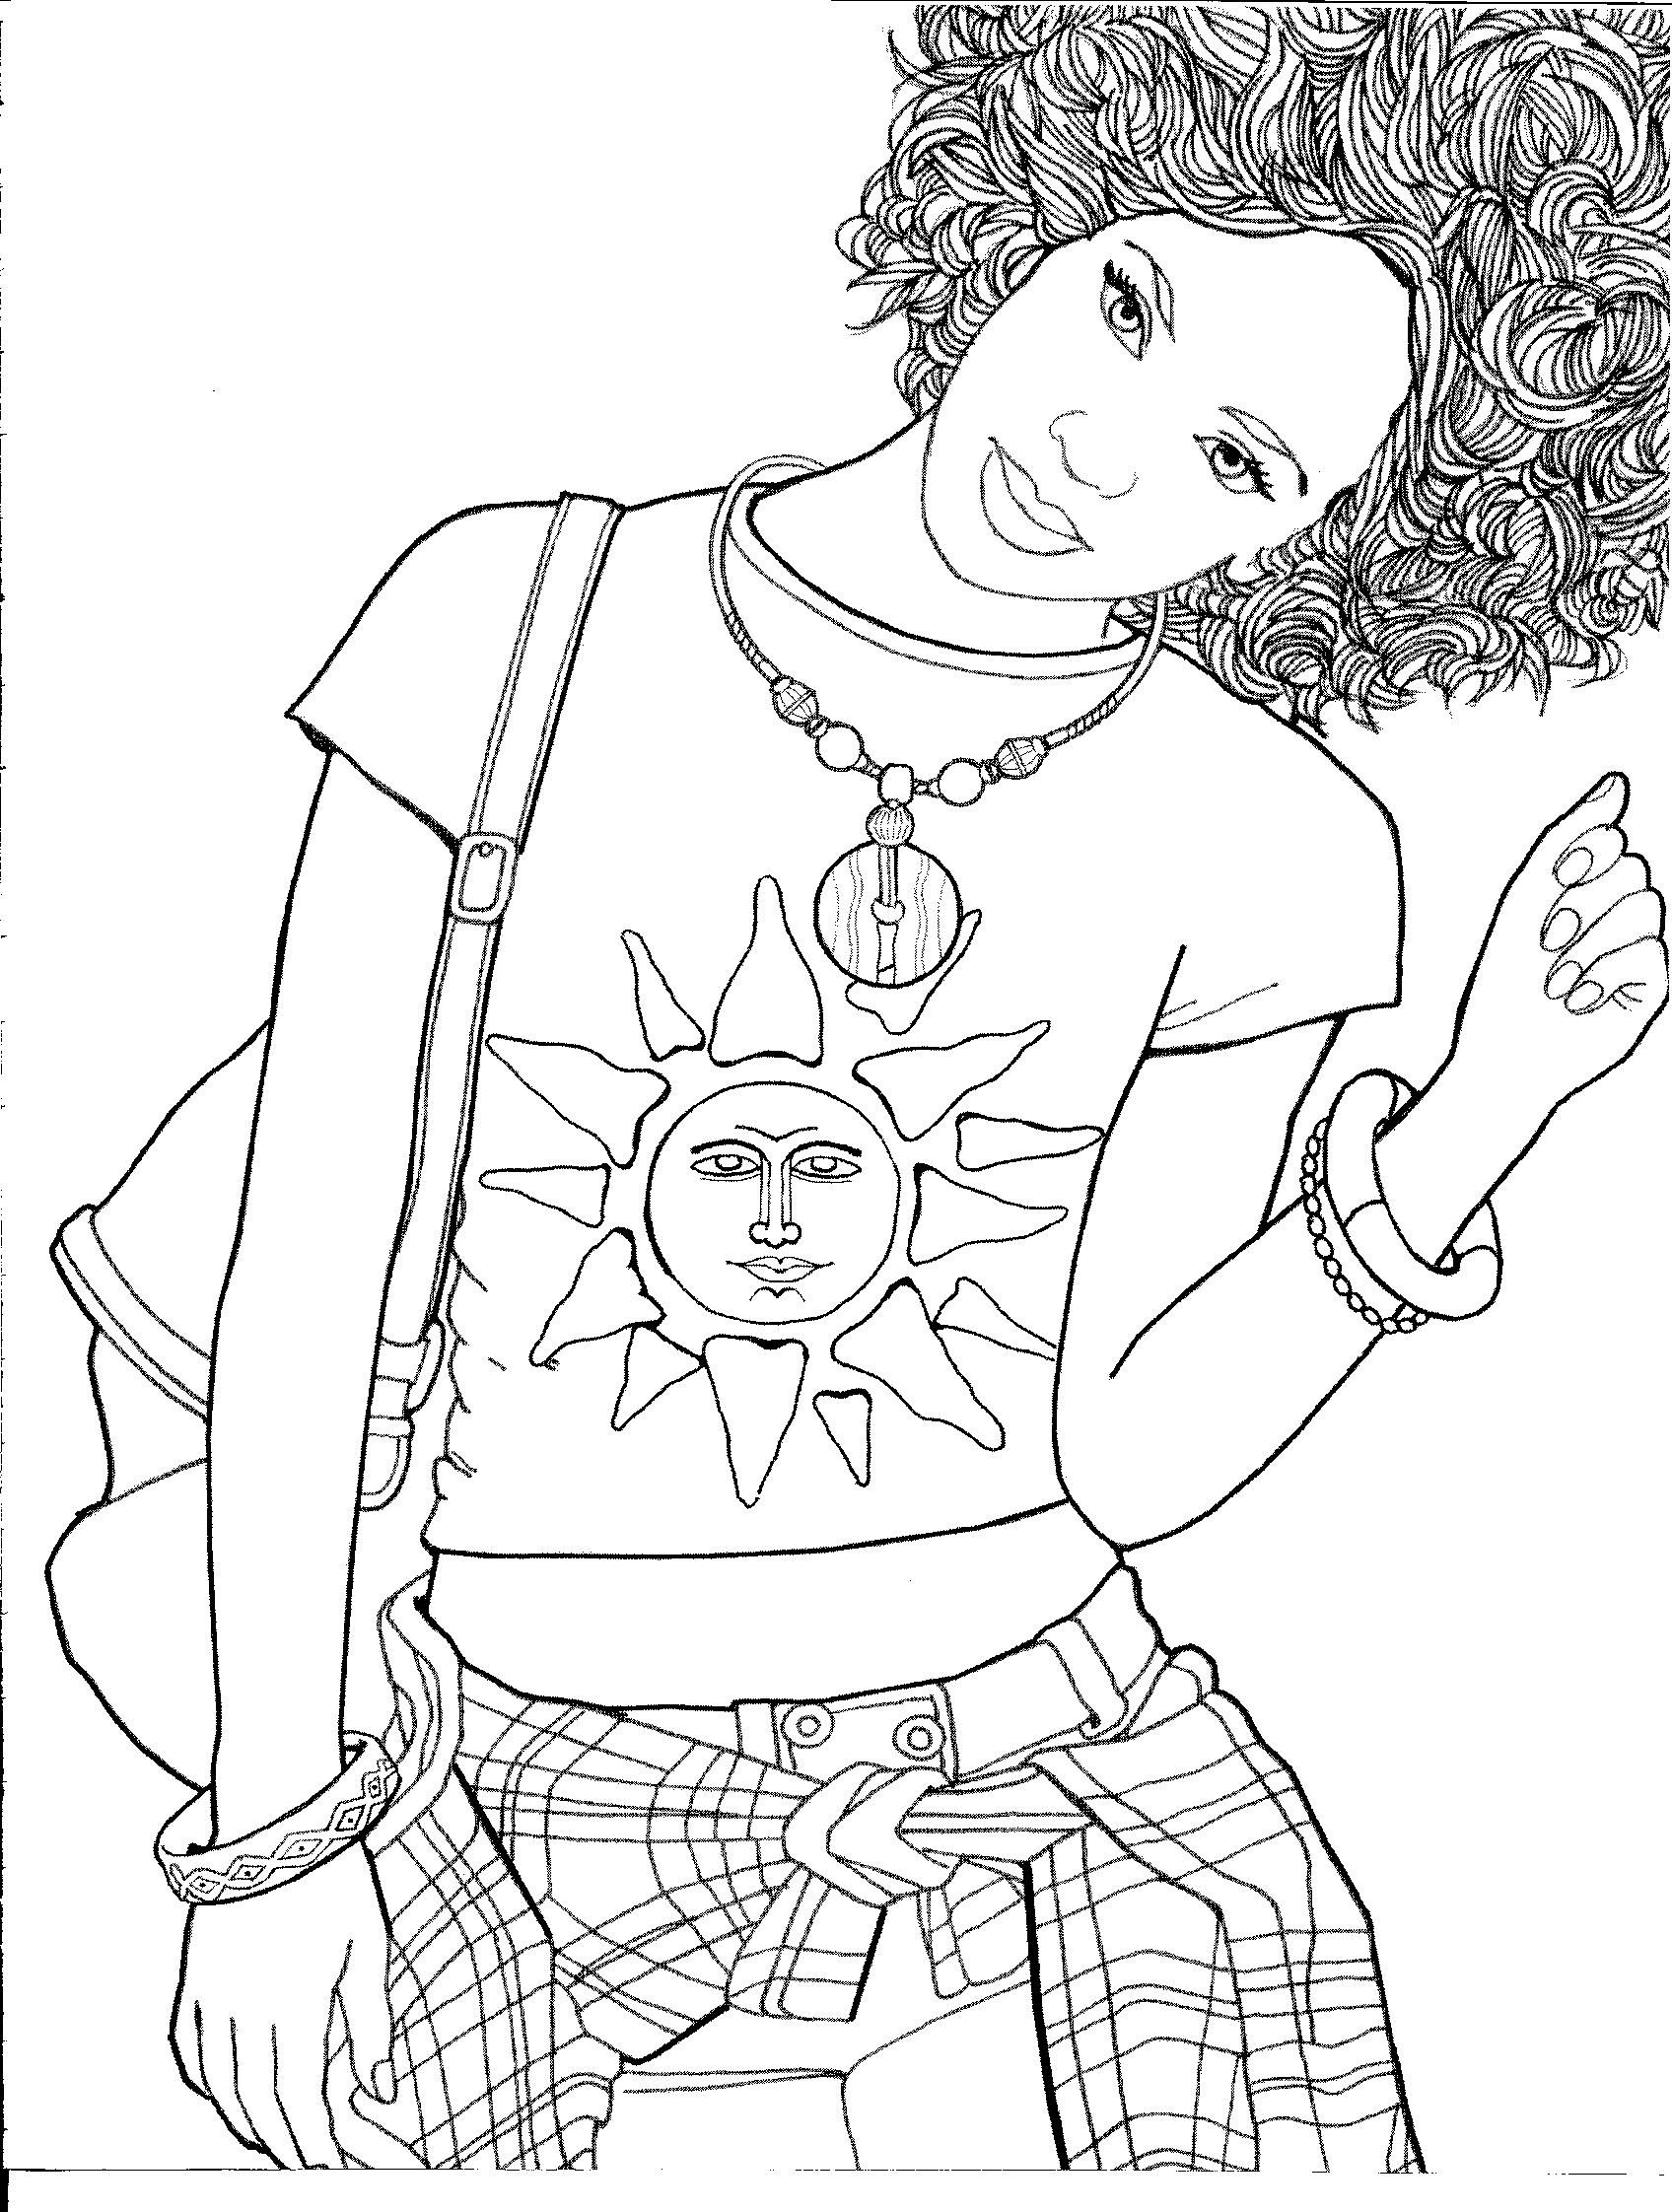 Coloring Pages Of Clothes With People In It - Lautigamu